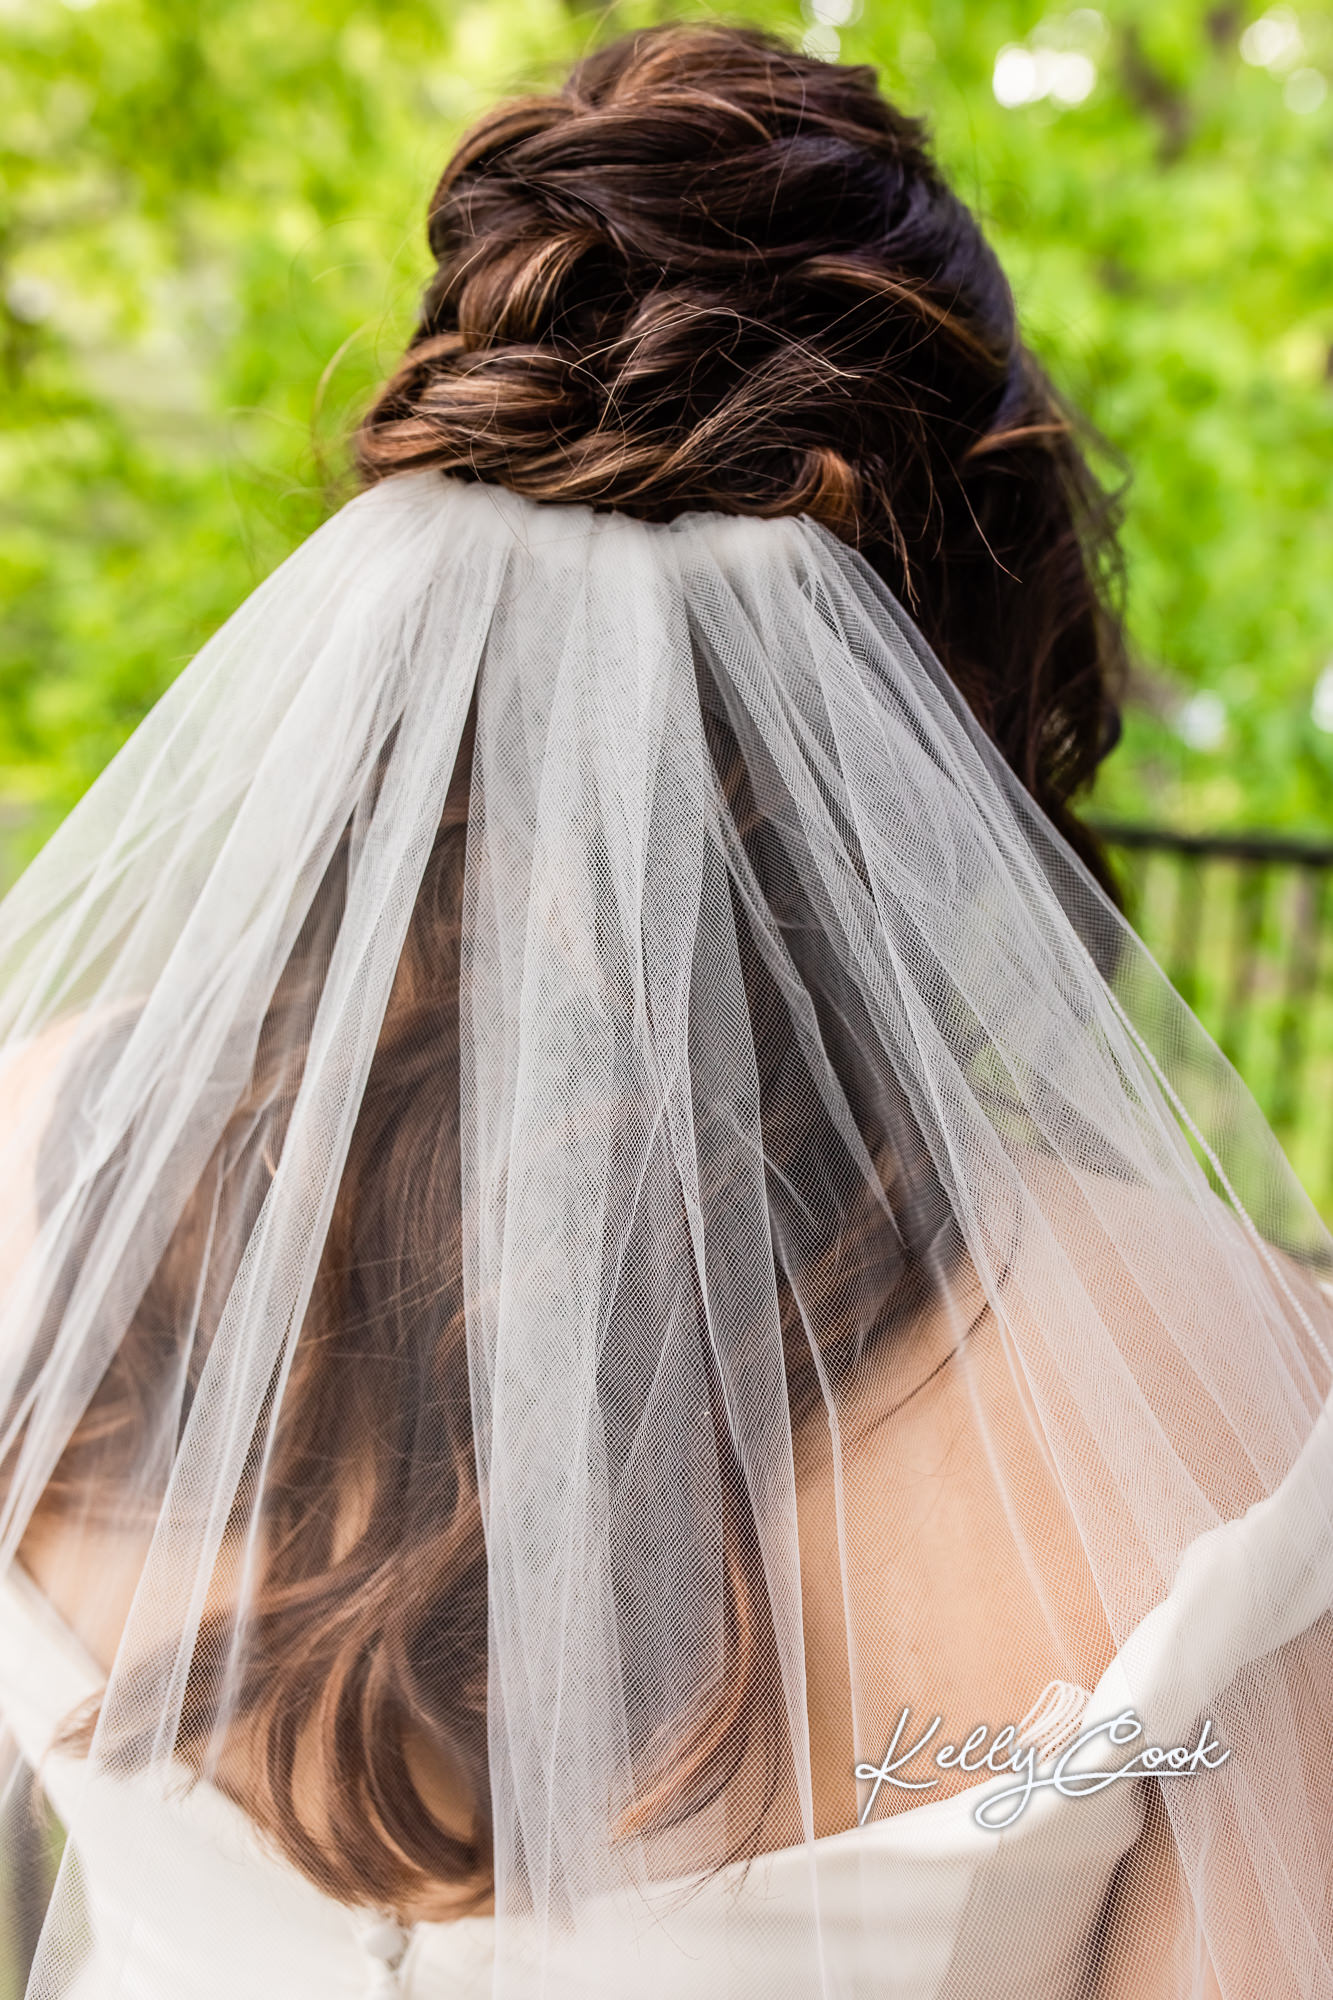 Photo of a bride's hair and veil before her wedding